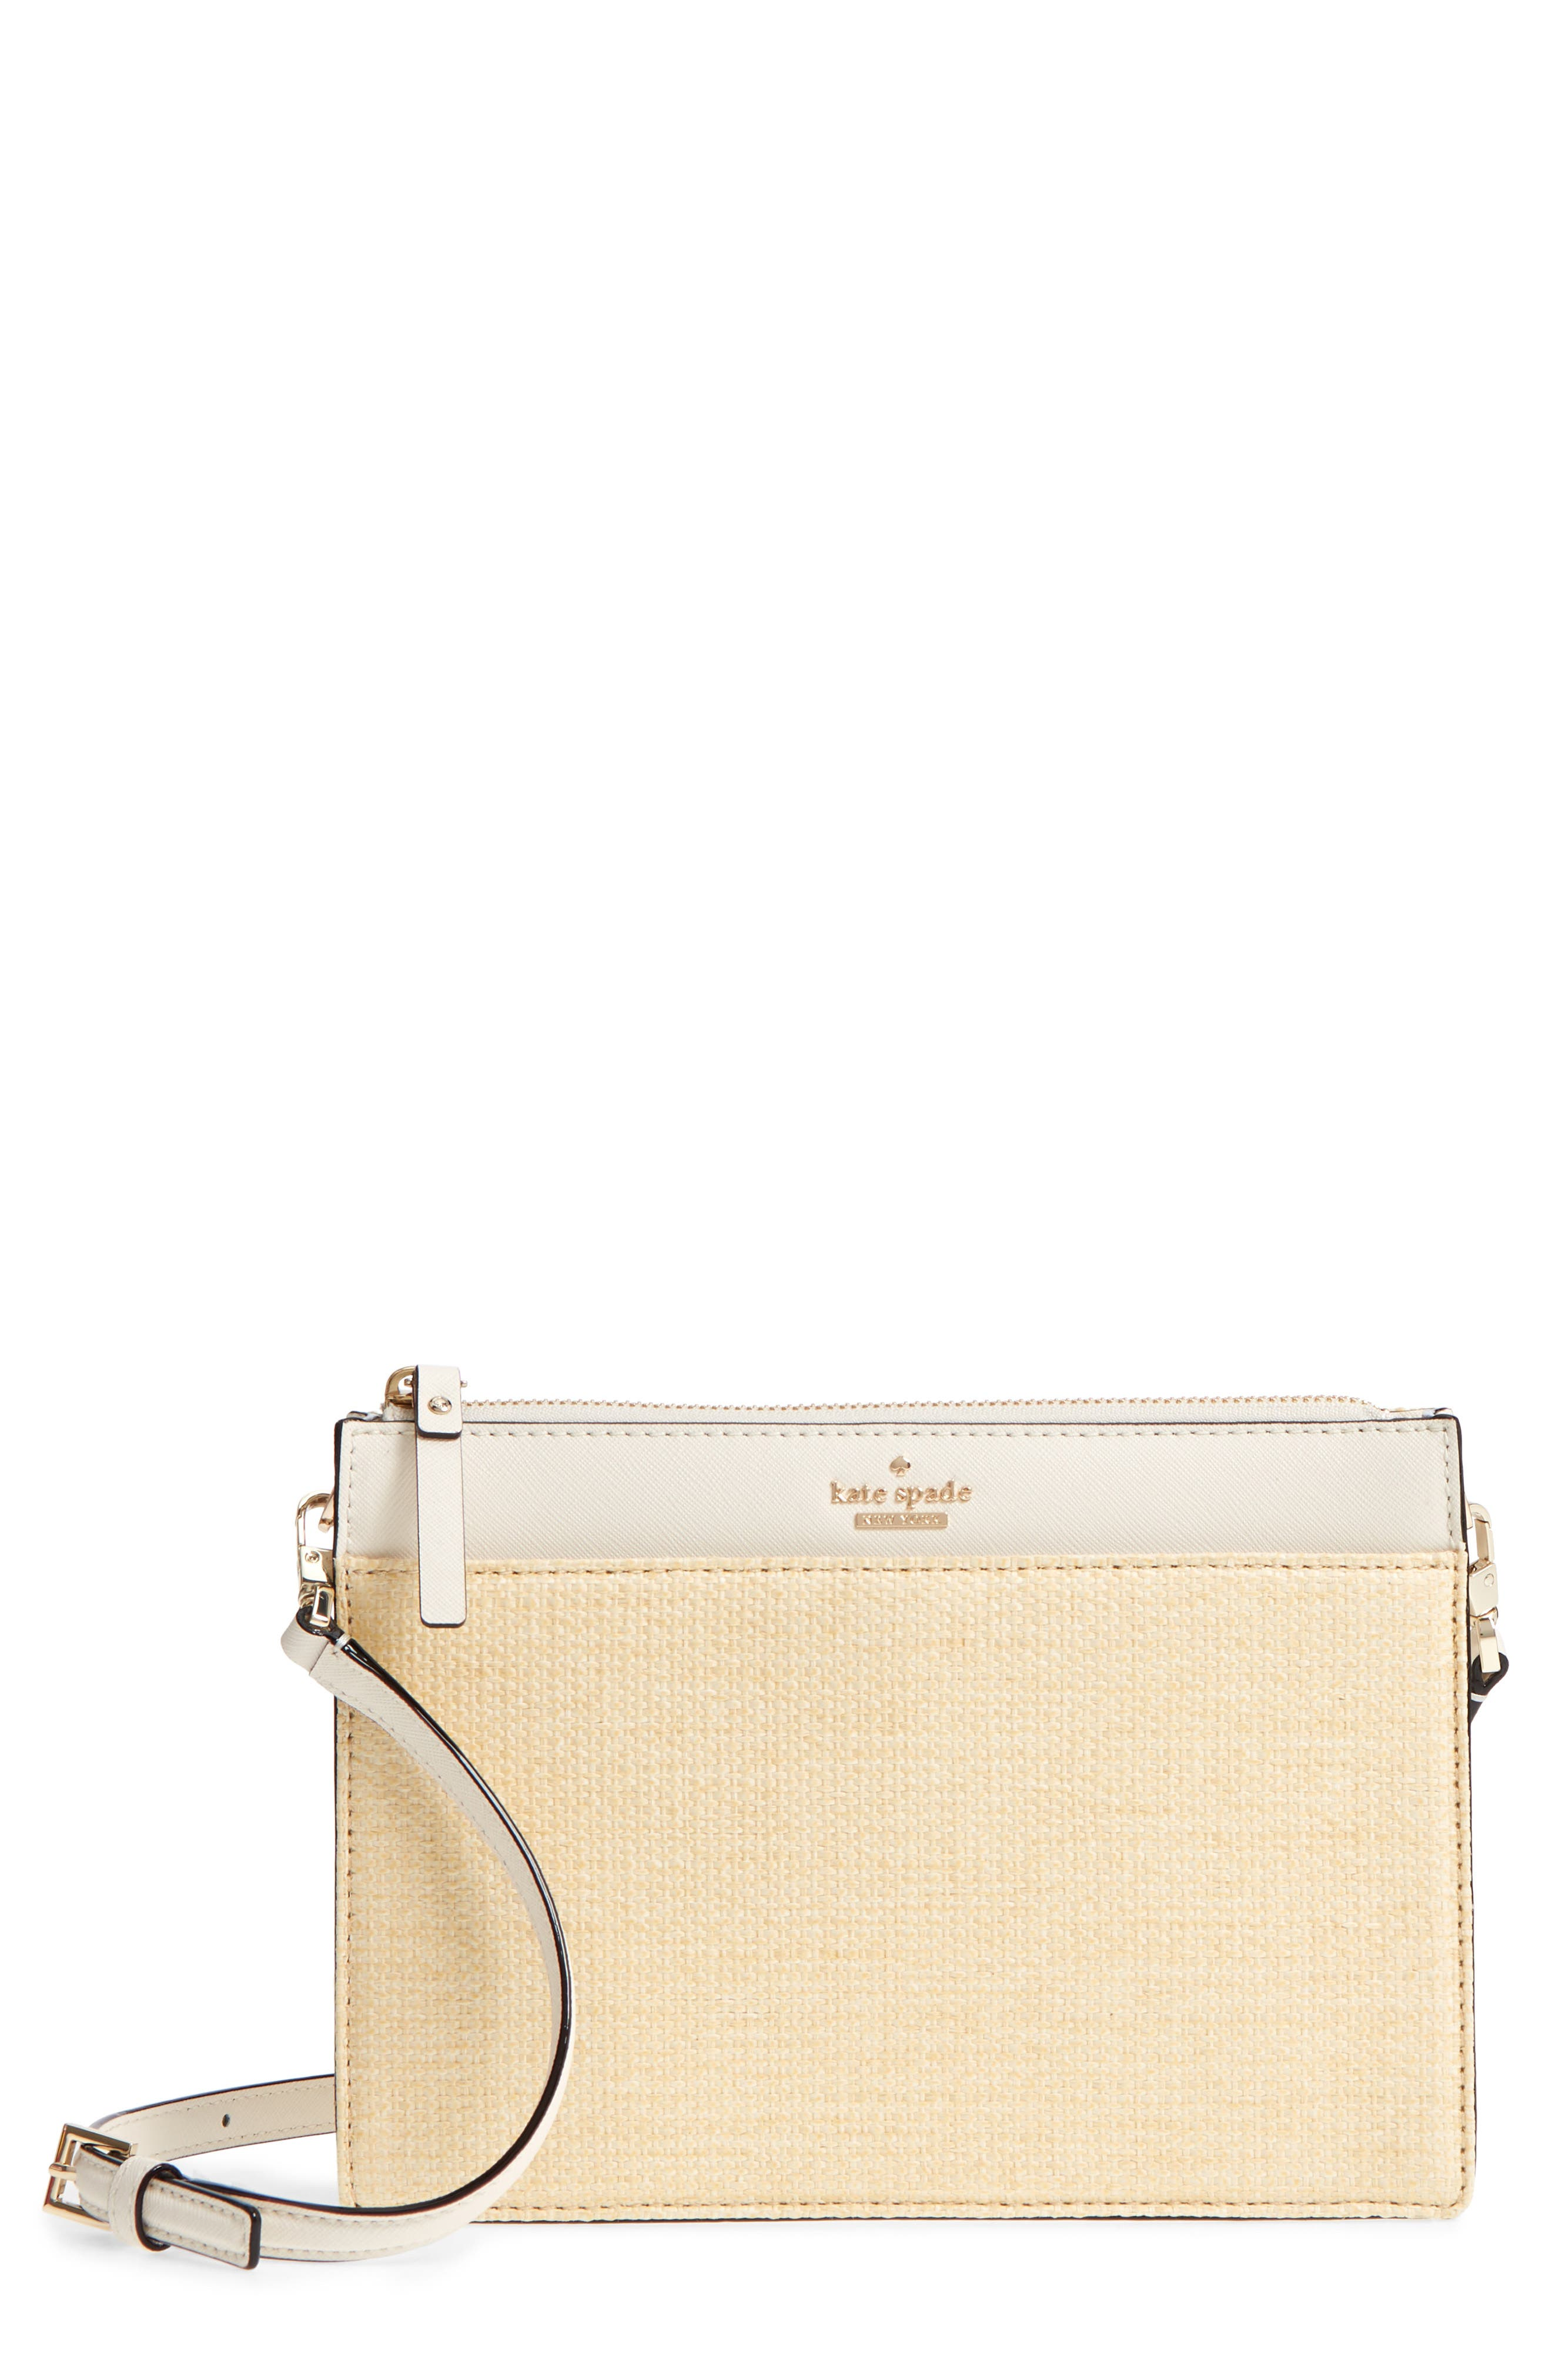 kate spade new york cameron street - clarise straw & leather shoulder bag